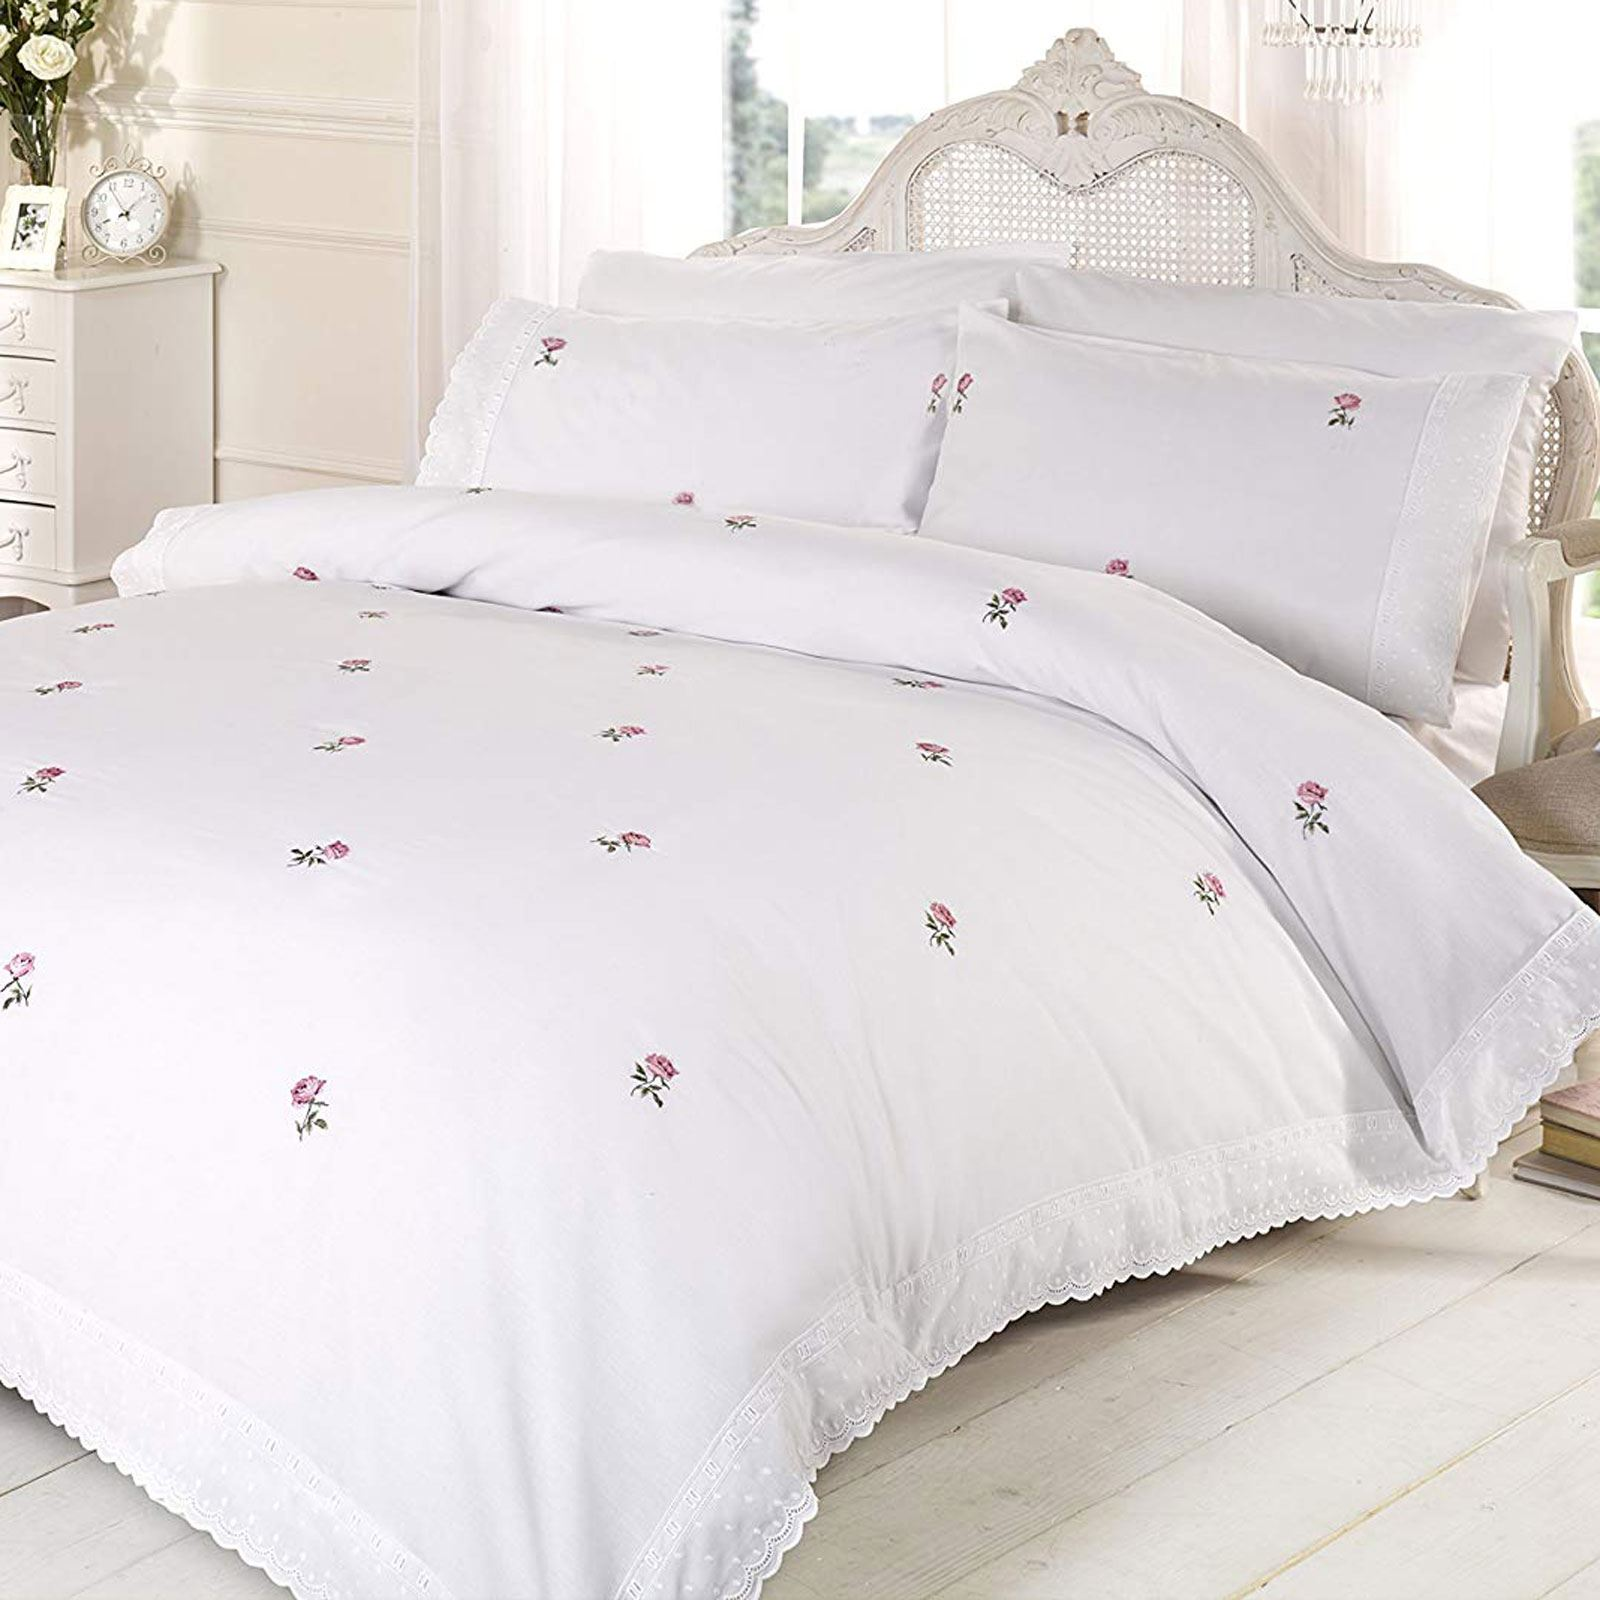 Alicia Floral White Pink King Size Duvet Cover Set